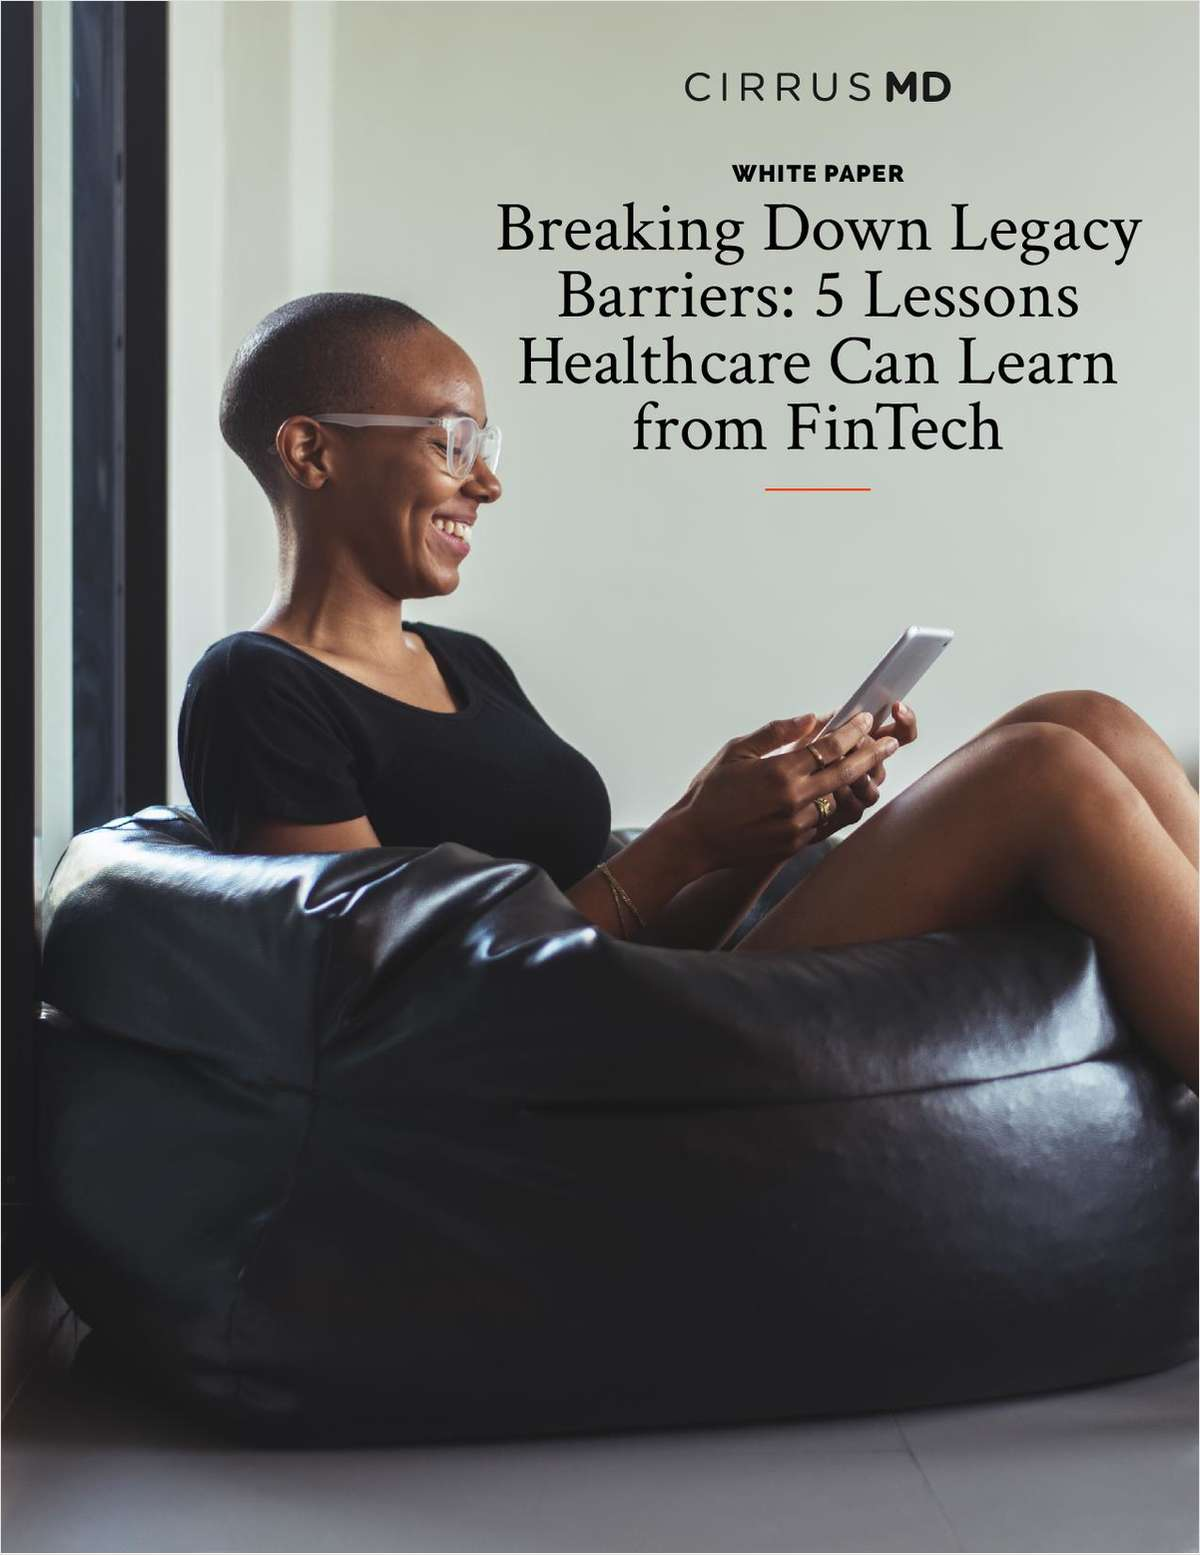 Break Down Legacy Barriers for Employees: 5 Lessons Healthcare Can Learn from FinTech